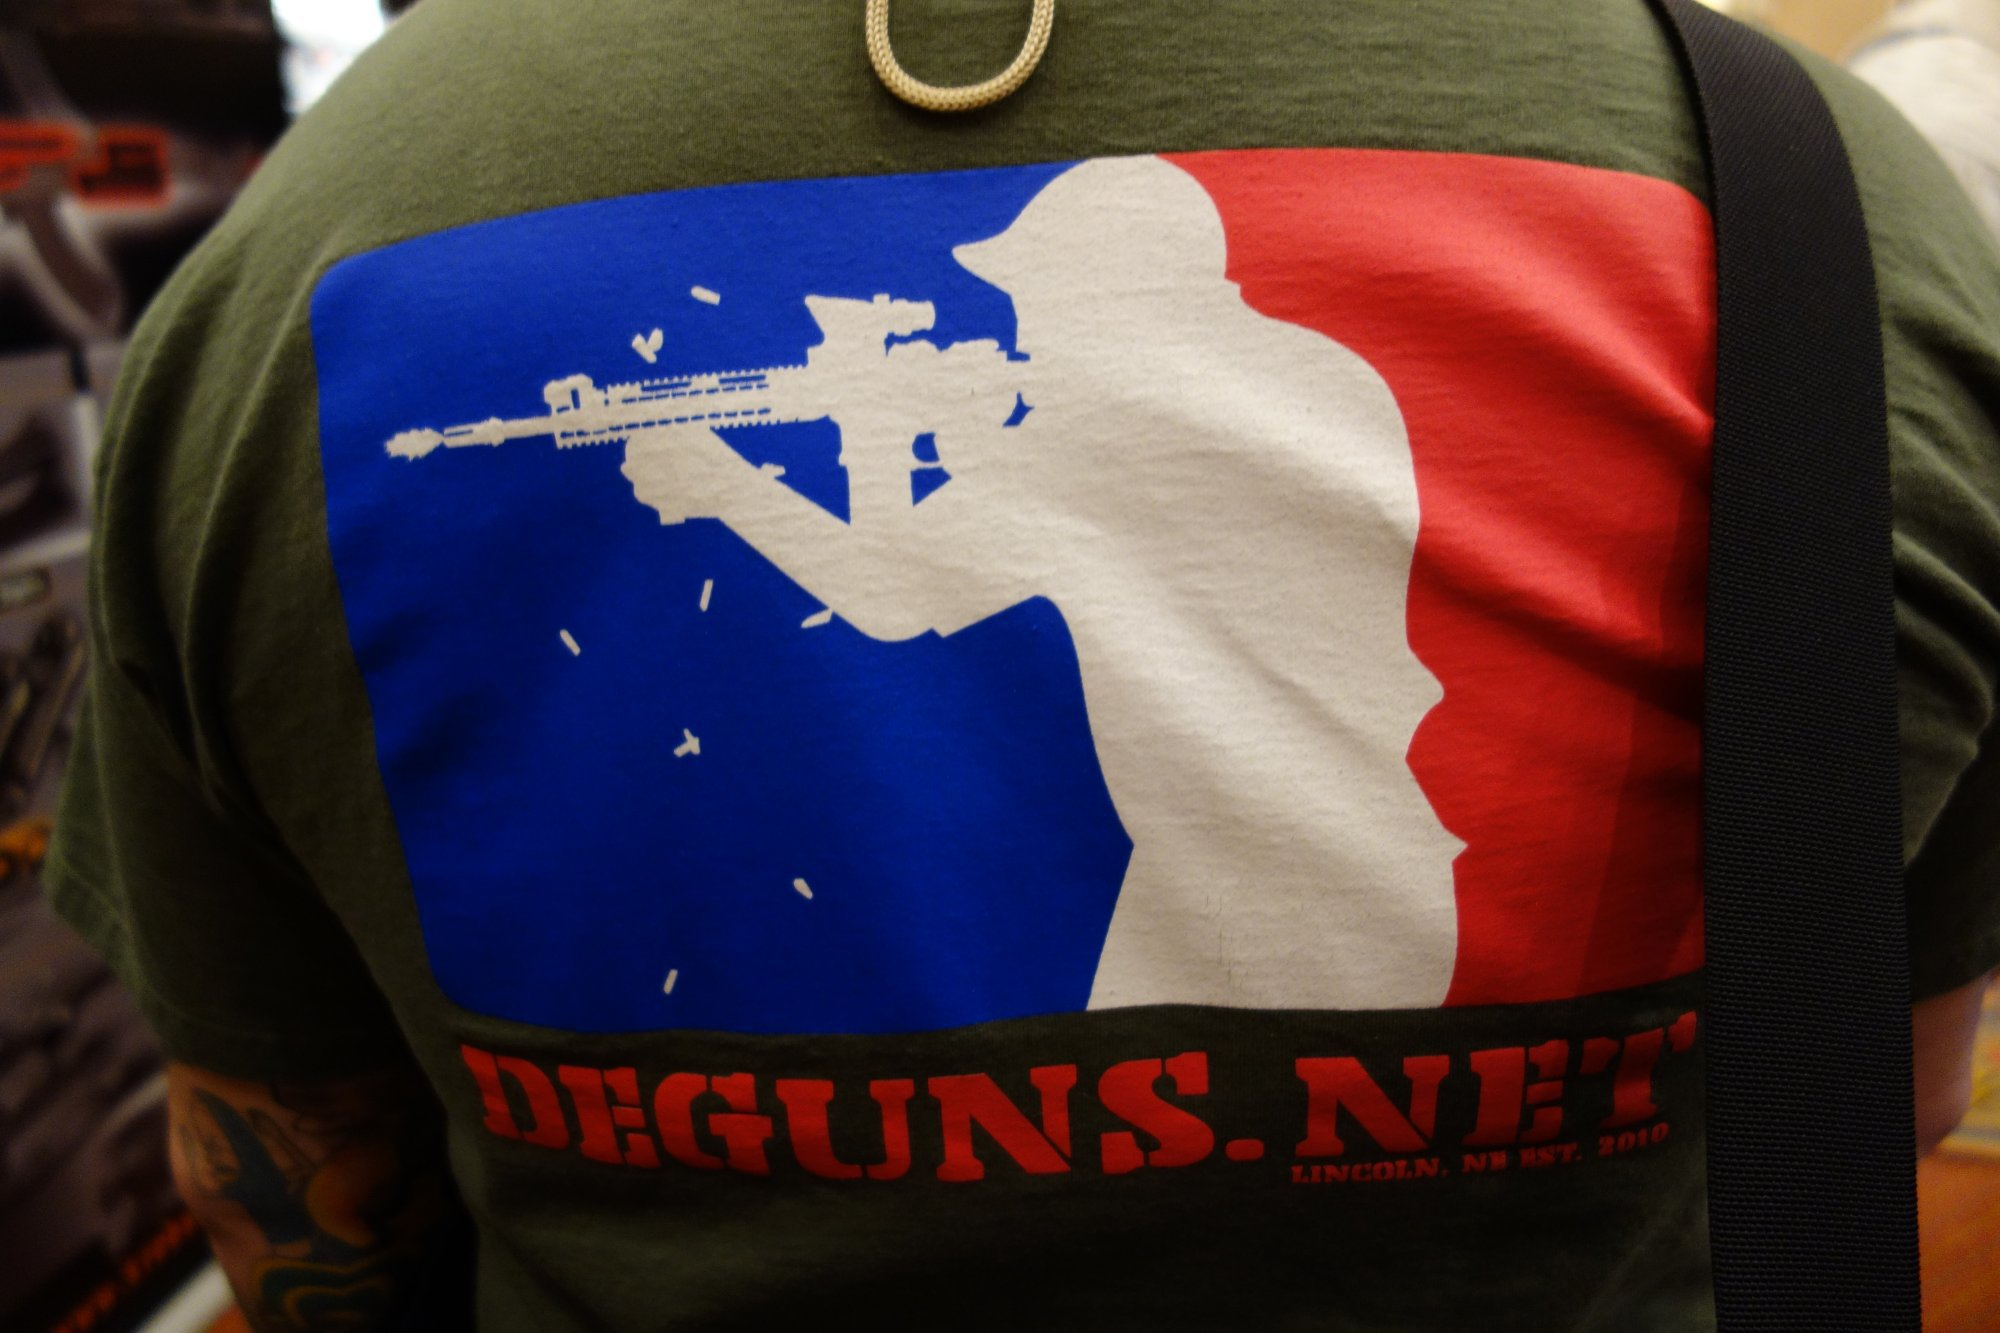 DEGUNS.net Discount Enterprises Guns Tactical Shooter Logo T Shirt SHOT Show 2013 David Crane DefenseReview.com DR 1 Cool T Shirt Alert: DEGUNS.net (Discount Enterprises Guns) Tactical Shooter Firing AR 15 Carbine Logo T Shirt